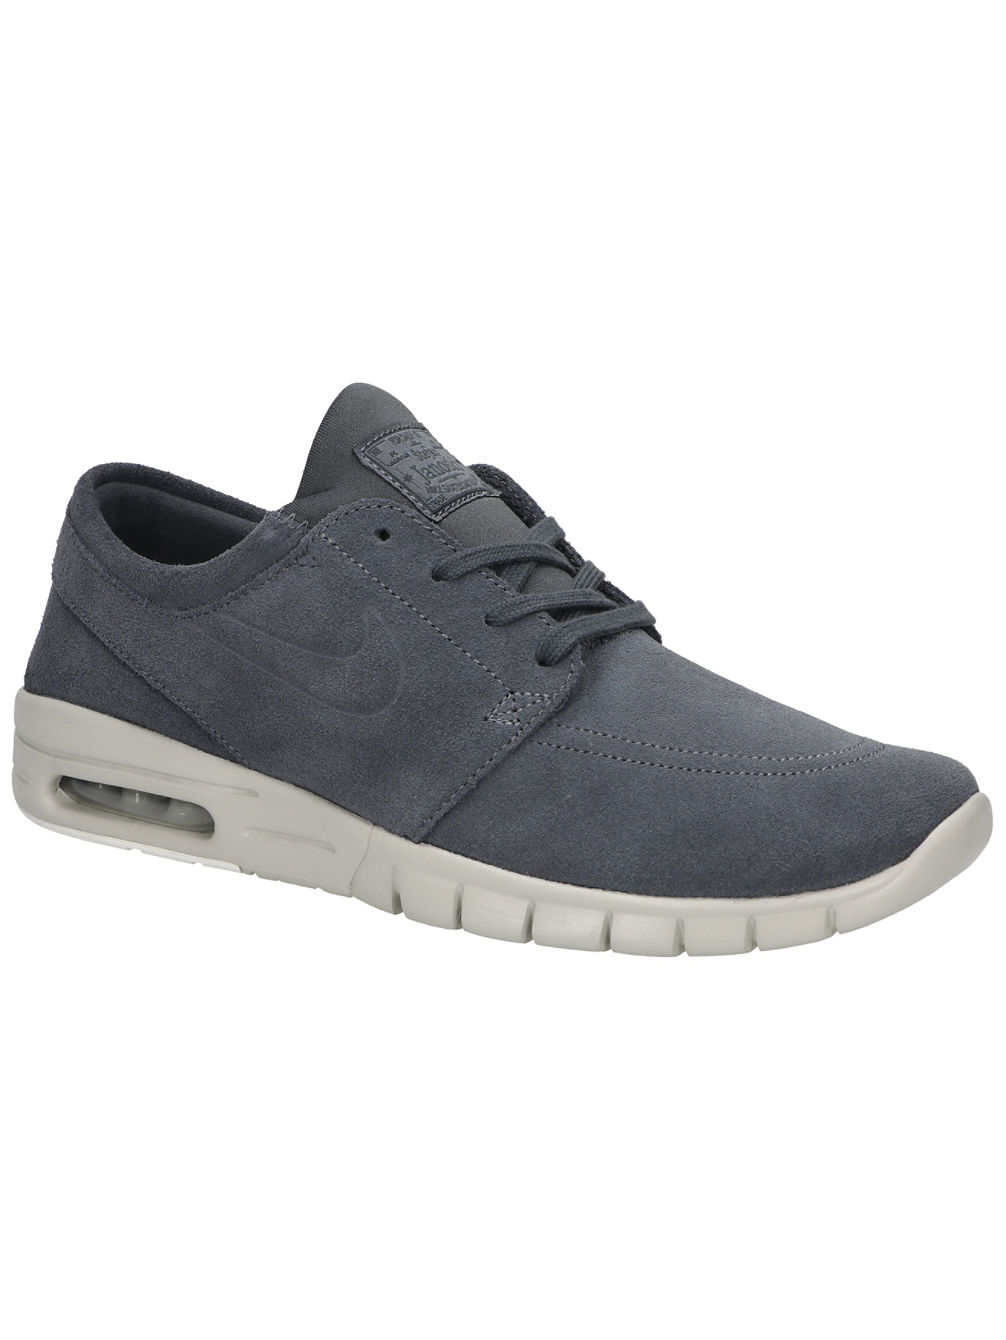 Stefan Janoski Max Leather Sneakers